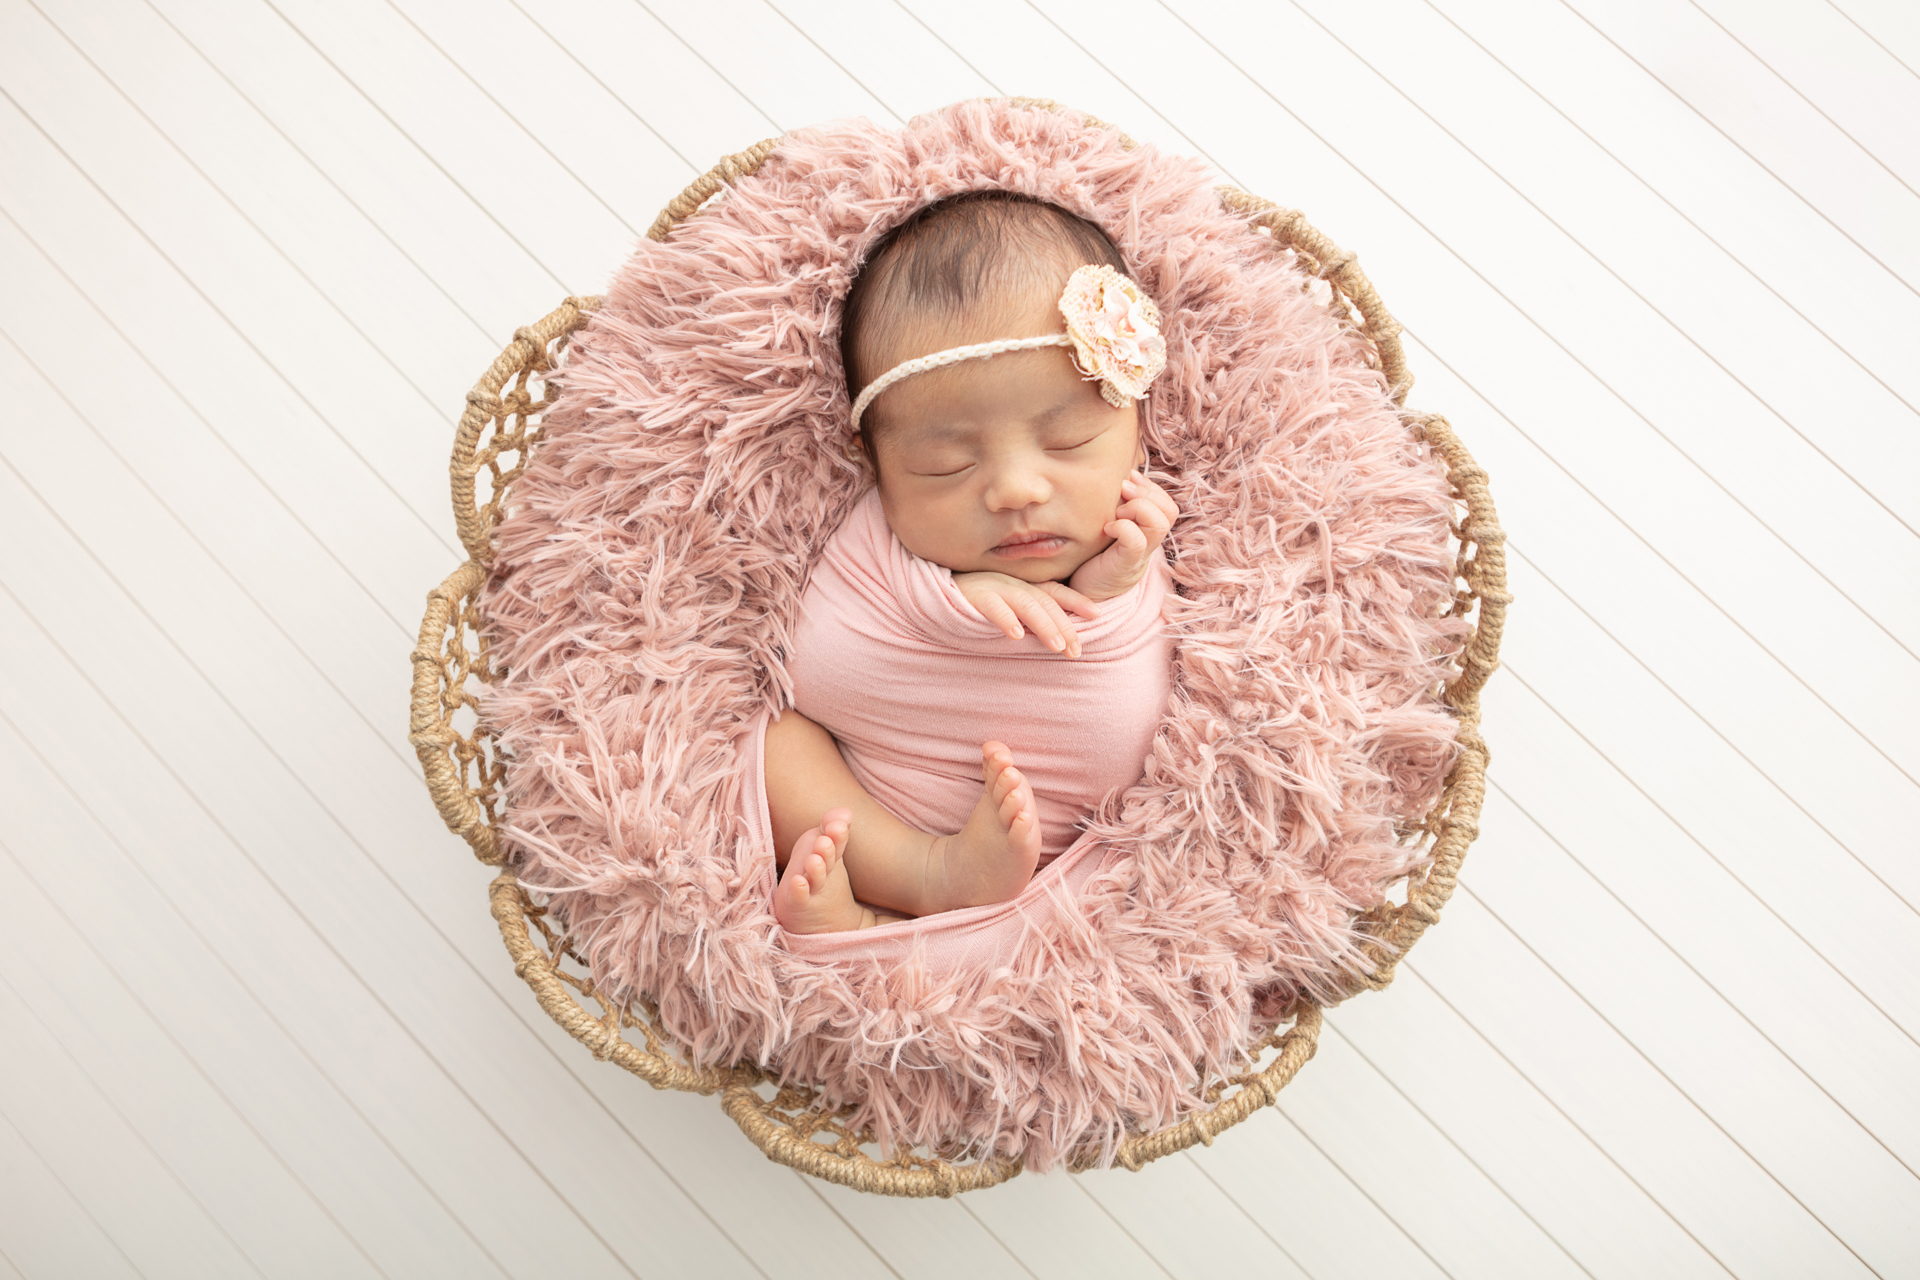 newborn baby girl with dark hair who is wrapped in a dusty pink swaddled, snuggled in a wicker basket with a dusty pink flokati, against a white wood paneled background